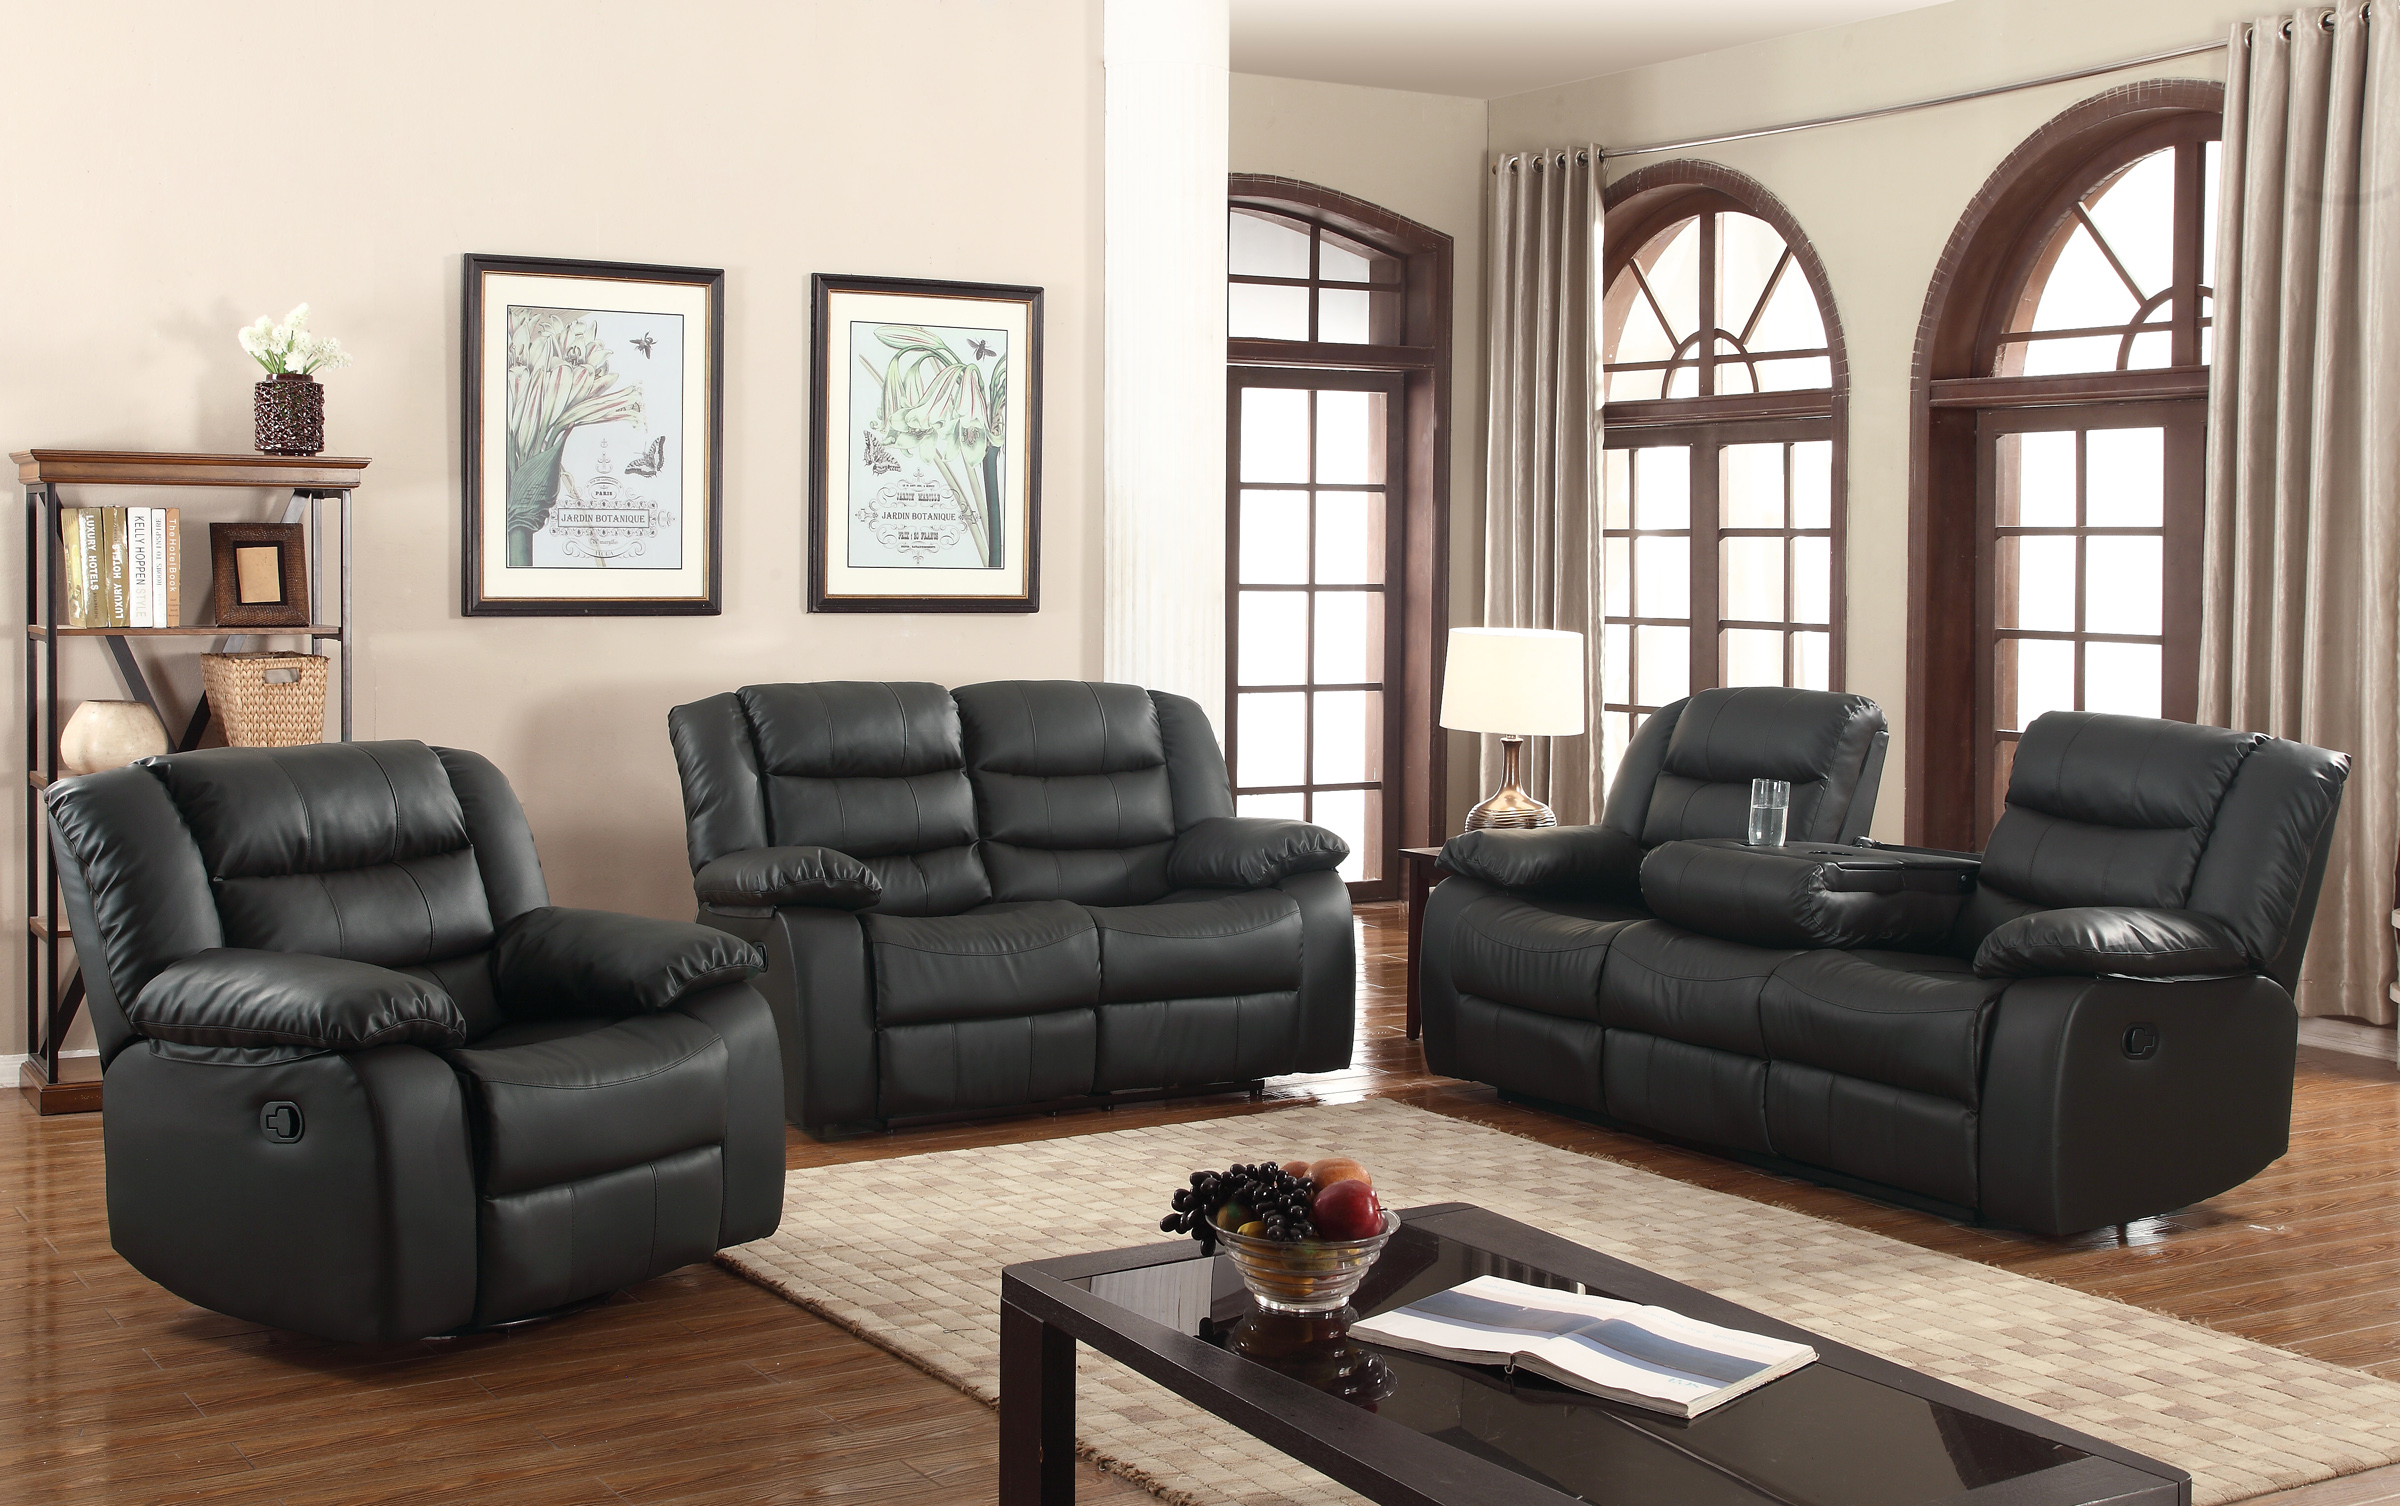 Fabulous 3 Piece Leather Living Room Set Lamtechconsult Wood Chair Design Ideas Lamtechconsultcom